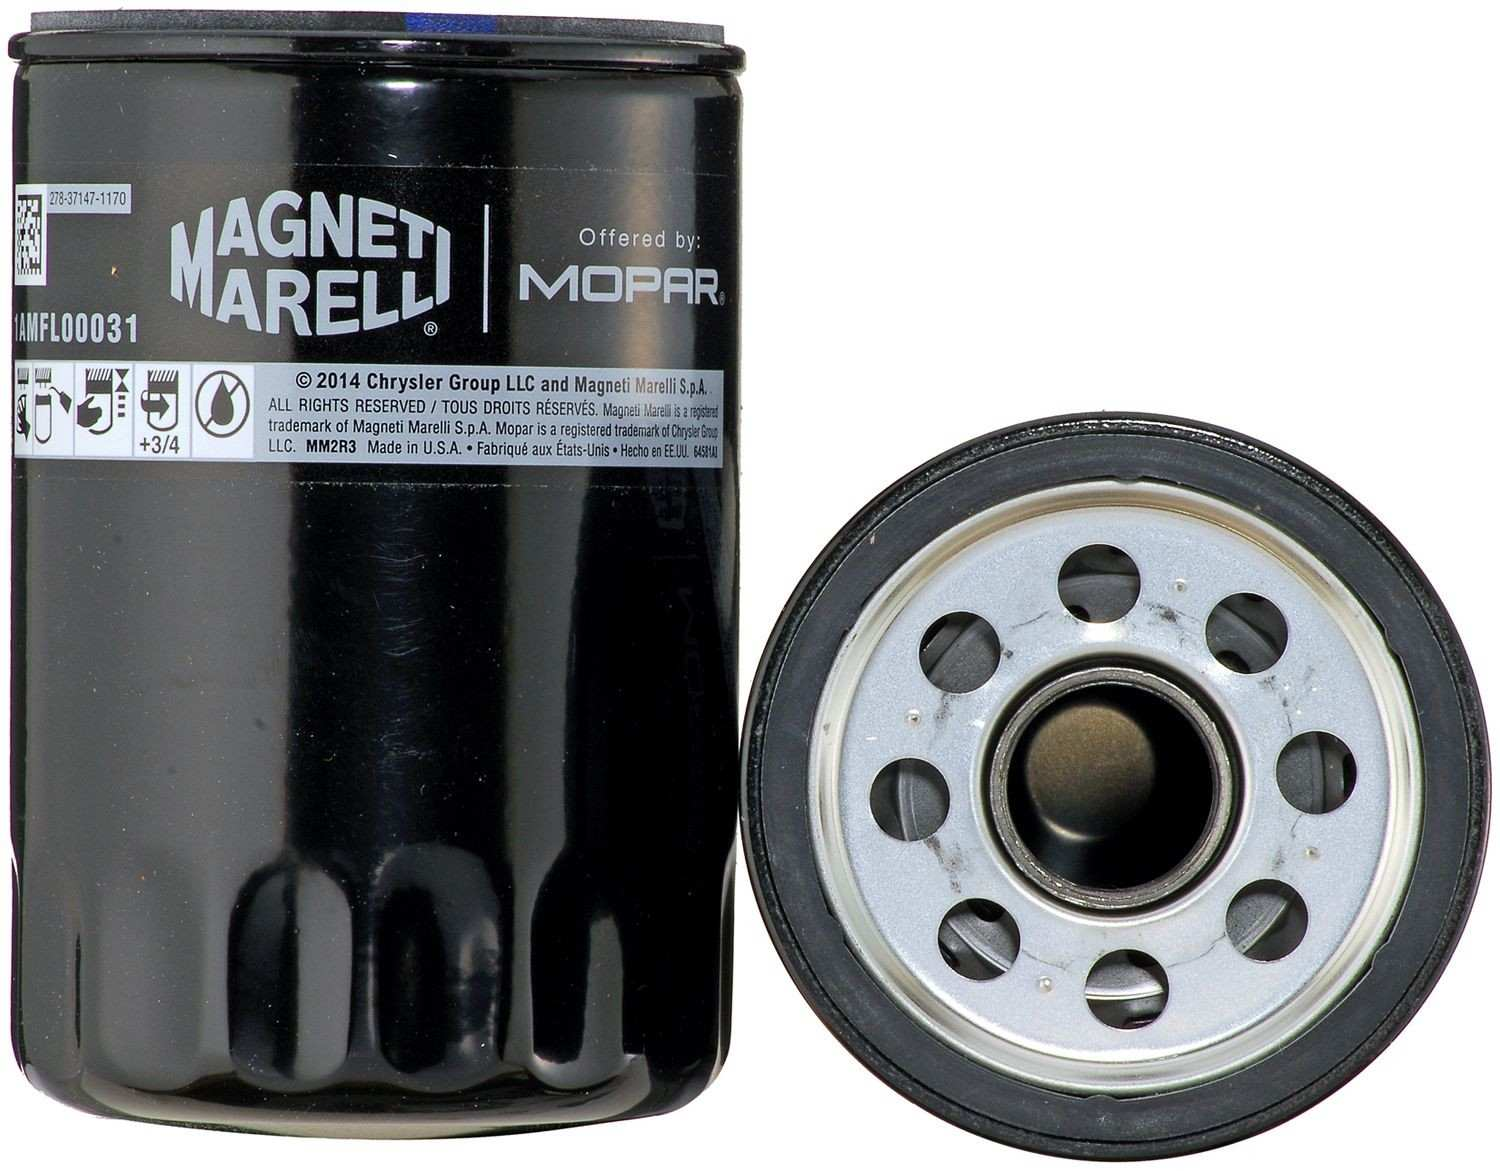 MAGNETI MARELLI OFFERED BY MOPAR - Engine Oil Filter - MGM 1AMFL00031